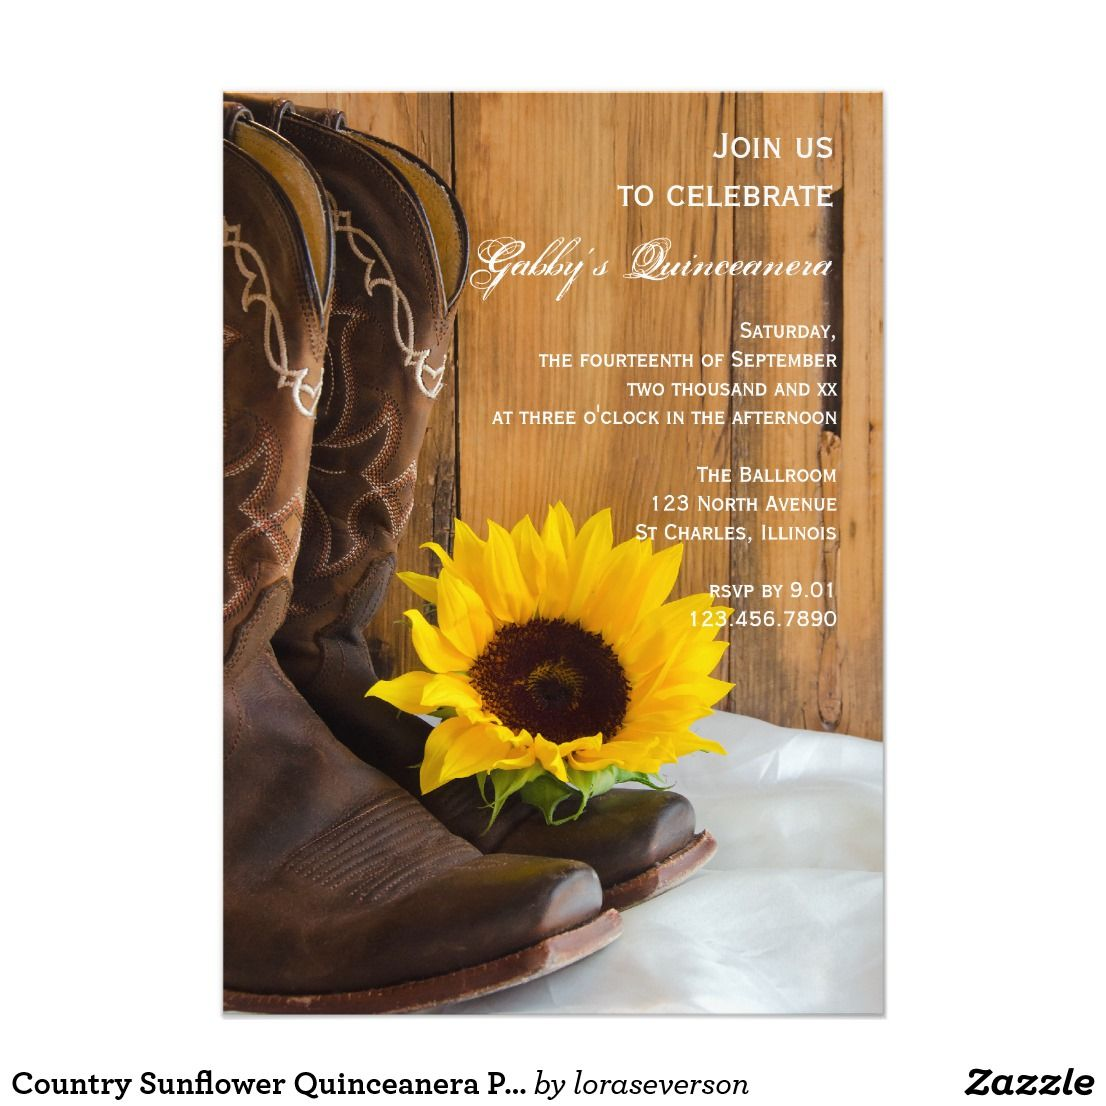 Country Sunflower Quinceanera Party Invitation | Invitations ...